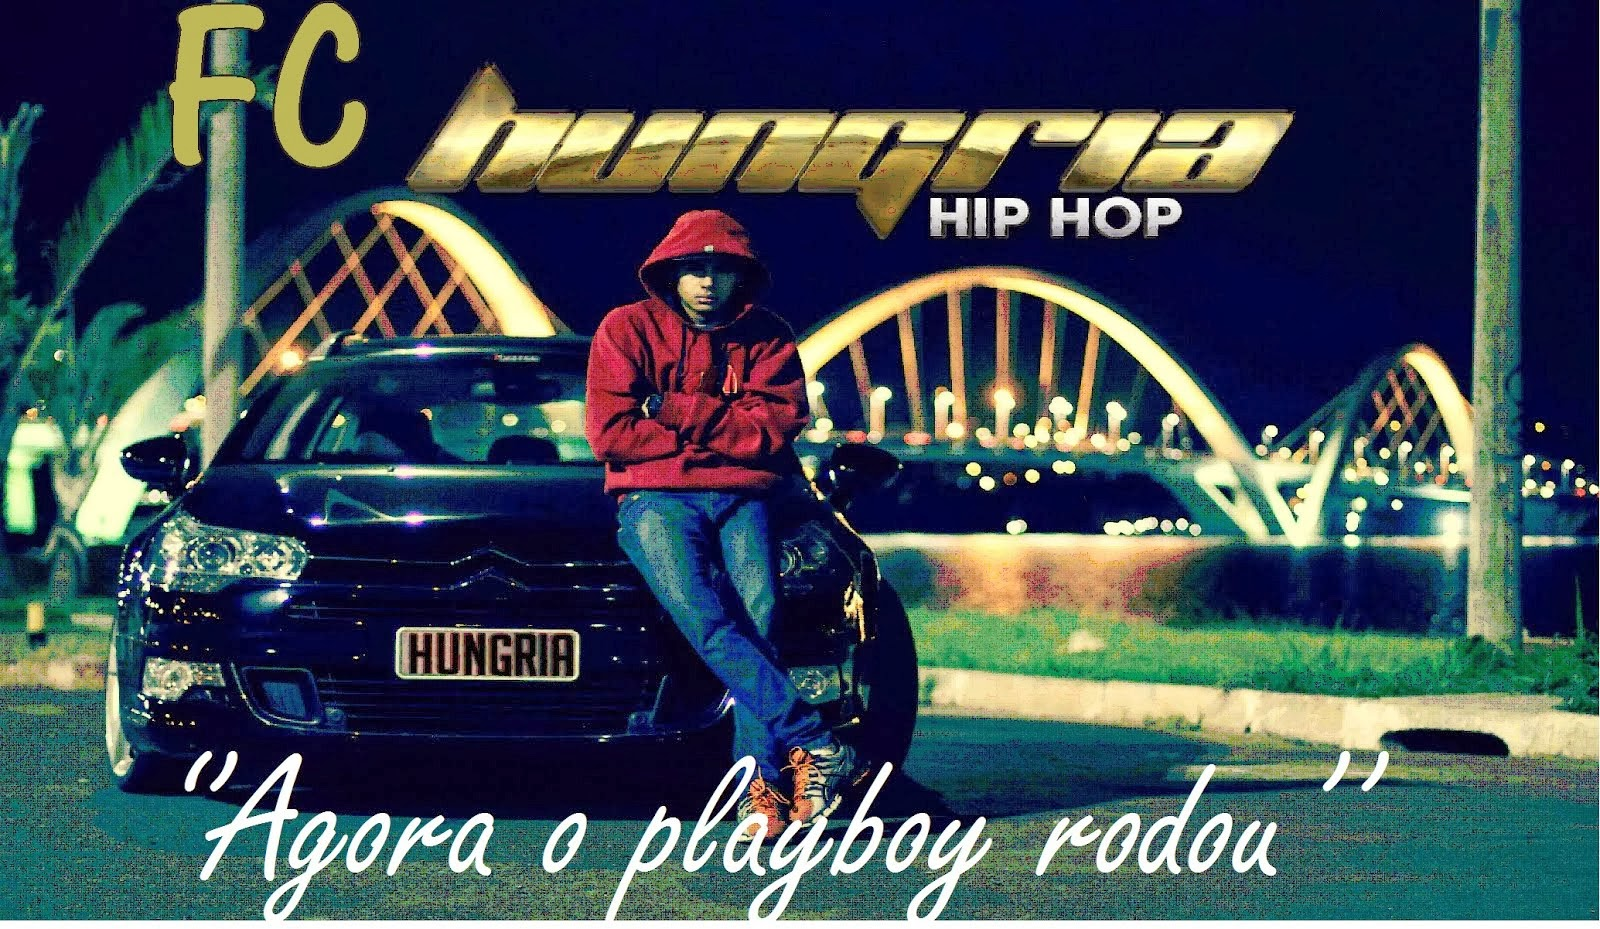 Blog Hungria Hip Hop – Bau dos Piratas – Mp3